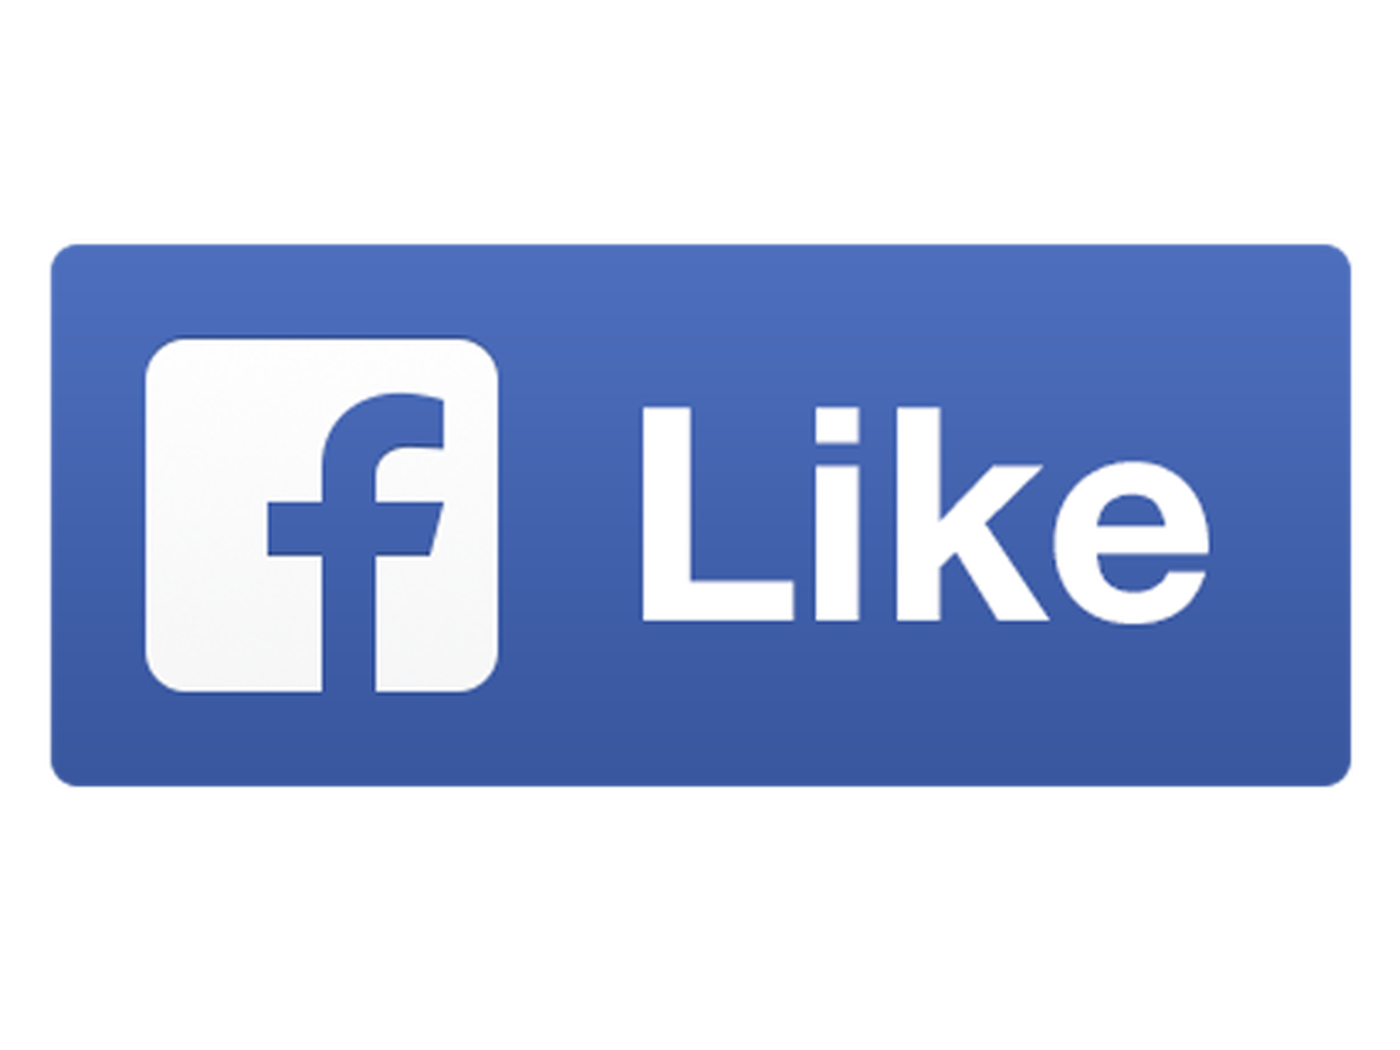 Facebook redesigns the Like button for the first time - The Verge